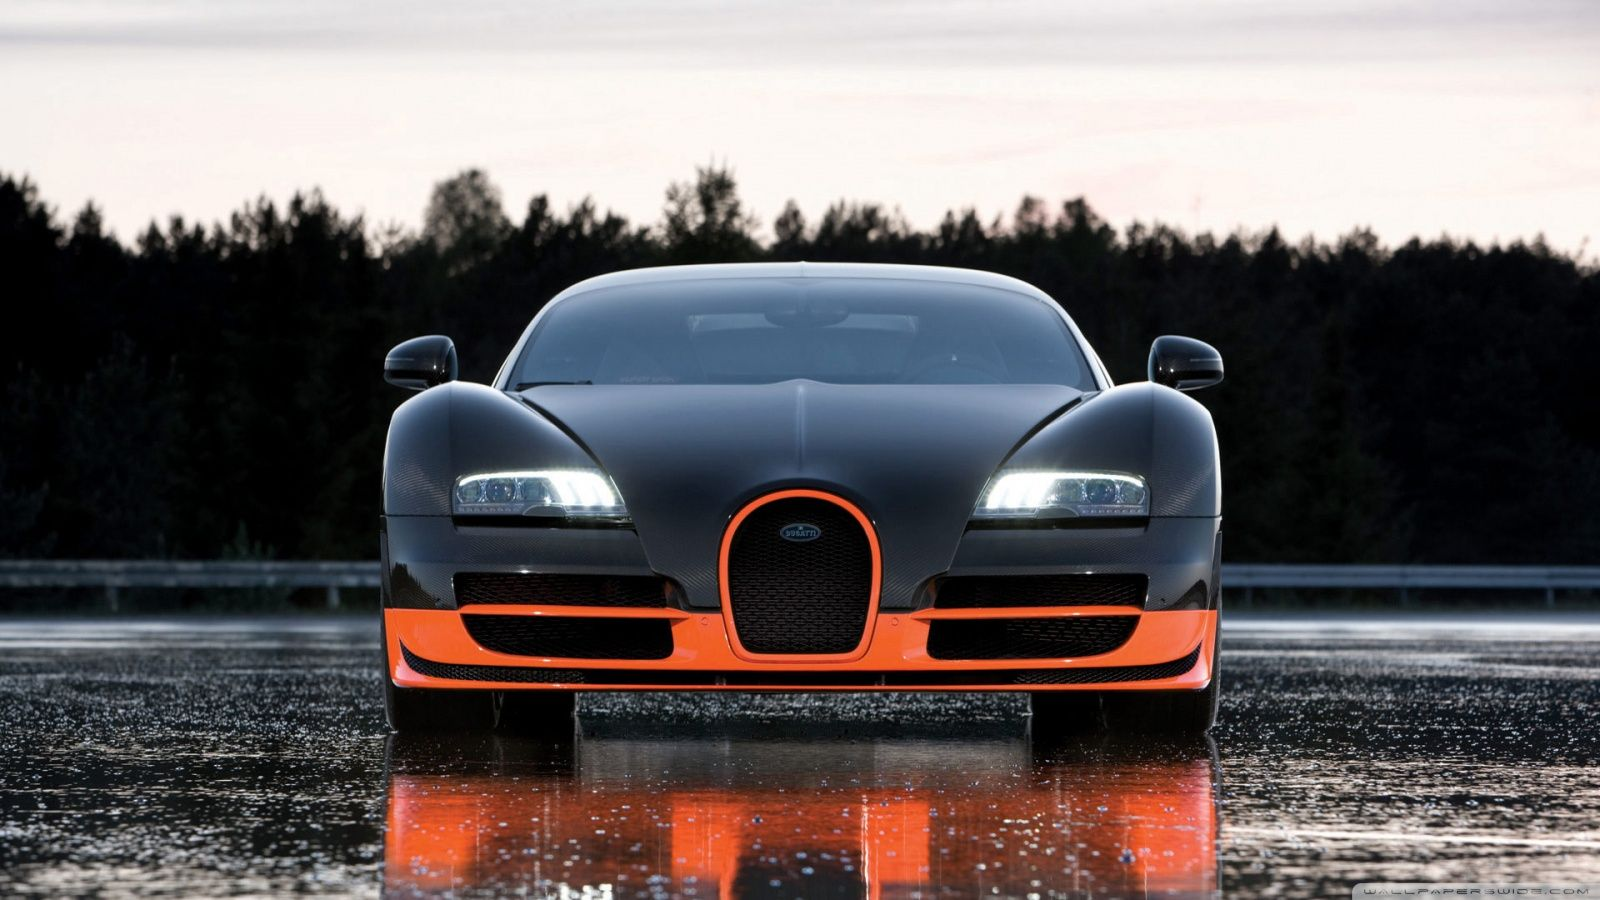 Bugatti Veyron HD Desktop Wallpaper High Definition Fullscreen - Sports cars definition